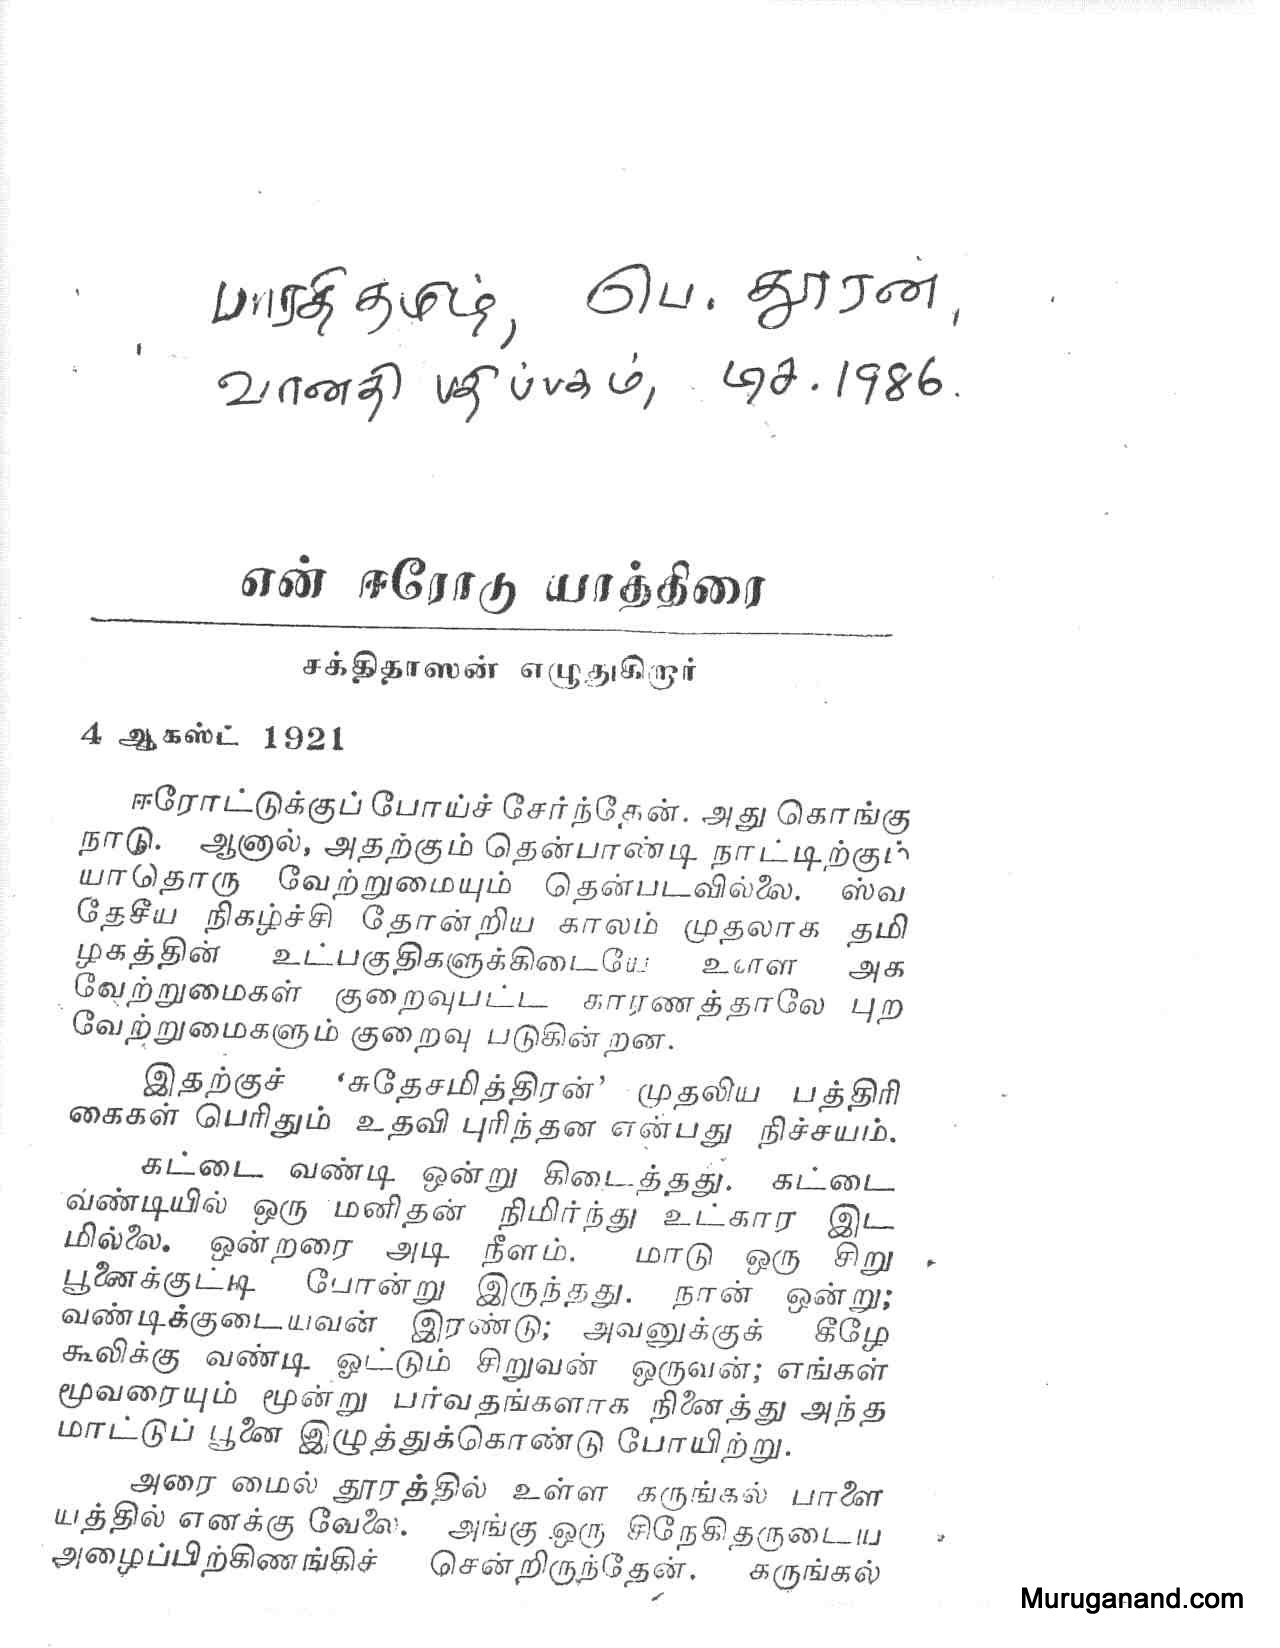 A humorous article by Bharati on his visit to library from Erode train station